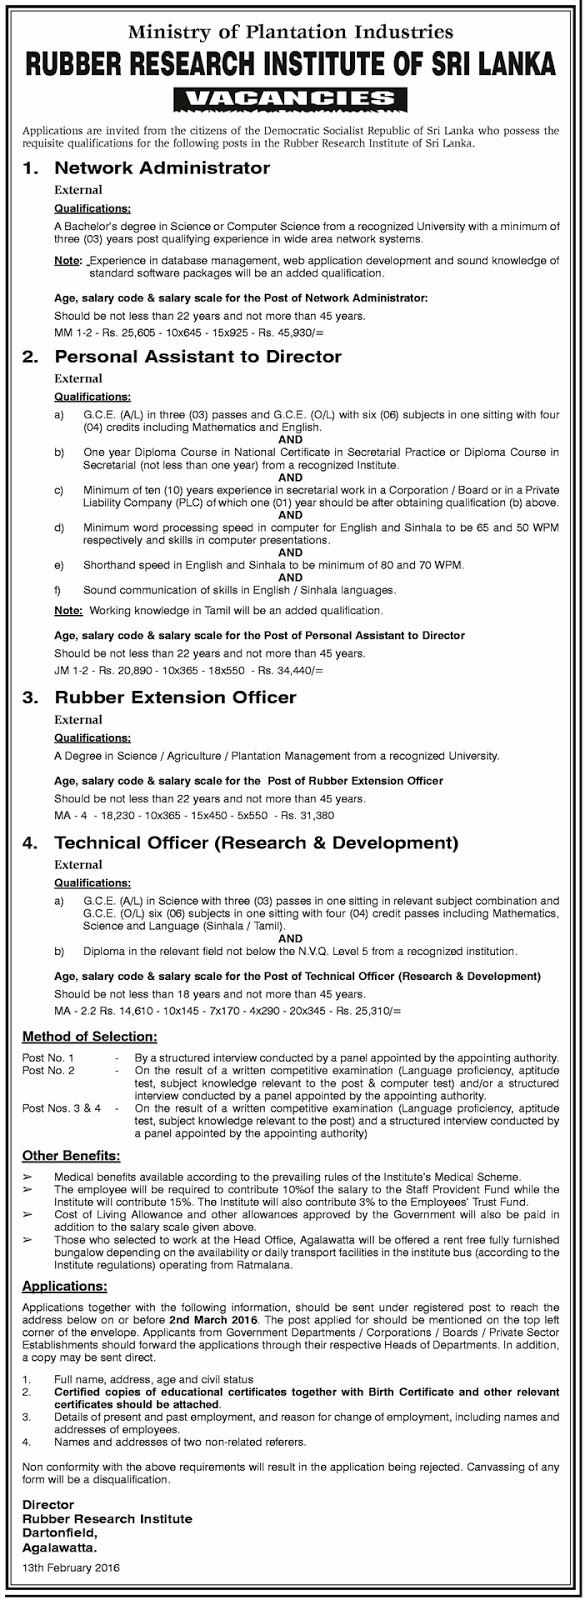 Vacancies - Network Administrator, Personal Assistant to Director, Rubber Extention Officer, Technical Officer (Research & Development) - Rubber Research Institute of Sri Lanka - Ministry of Plantation Industries